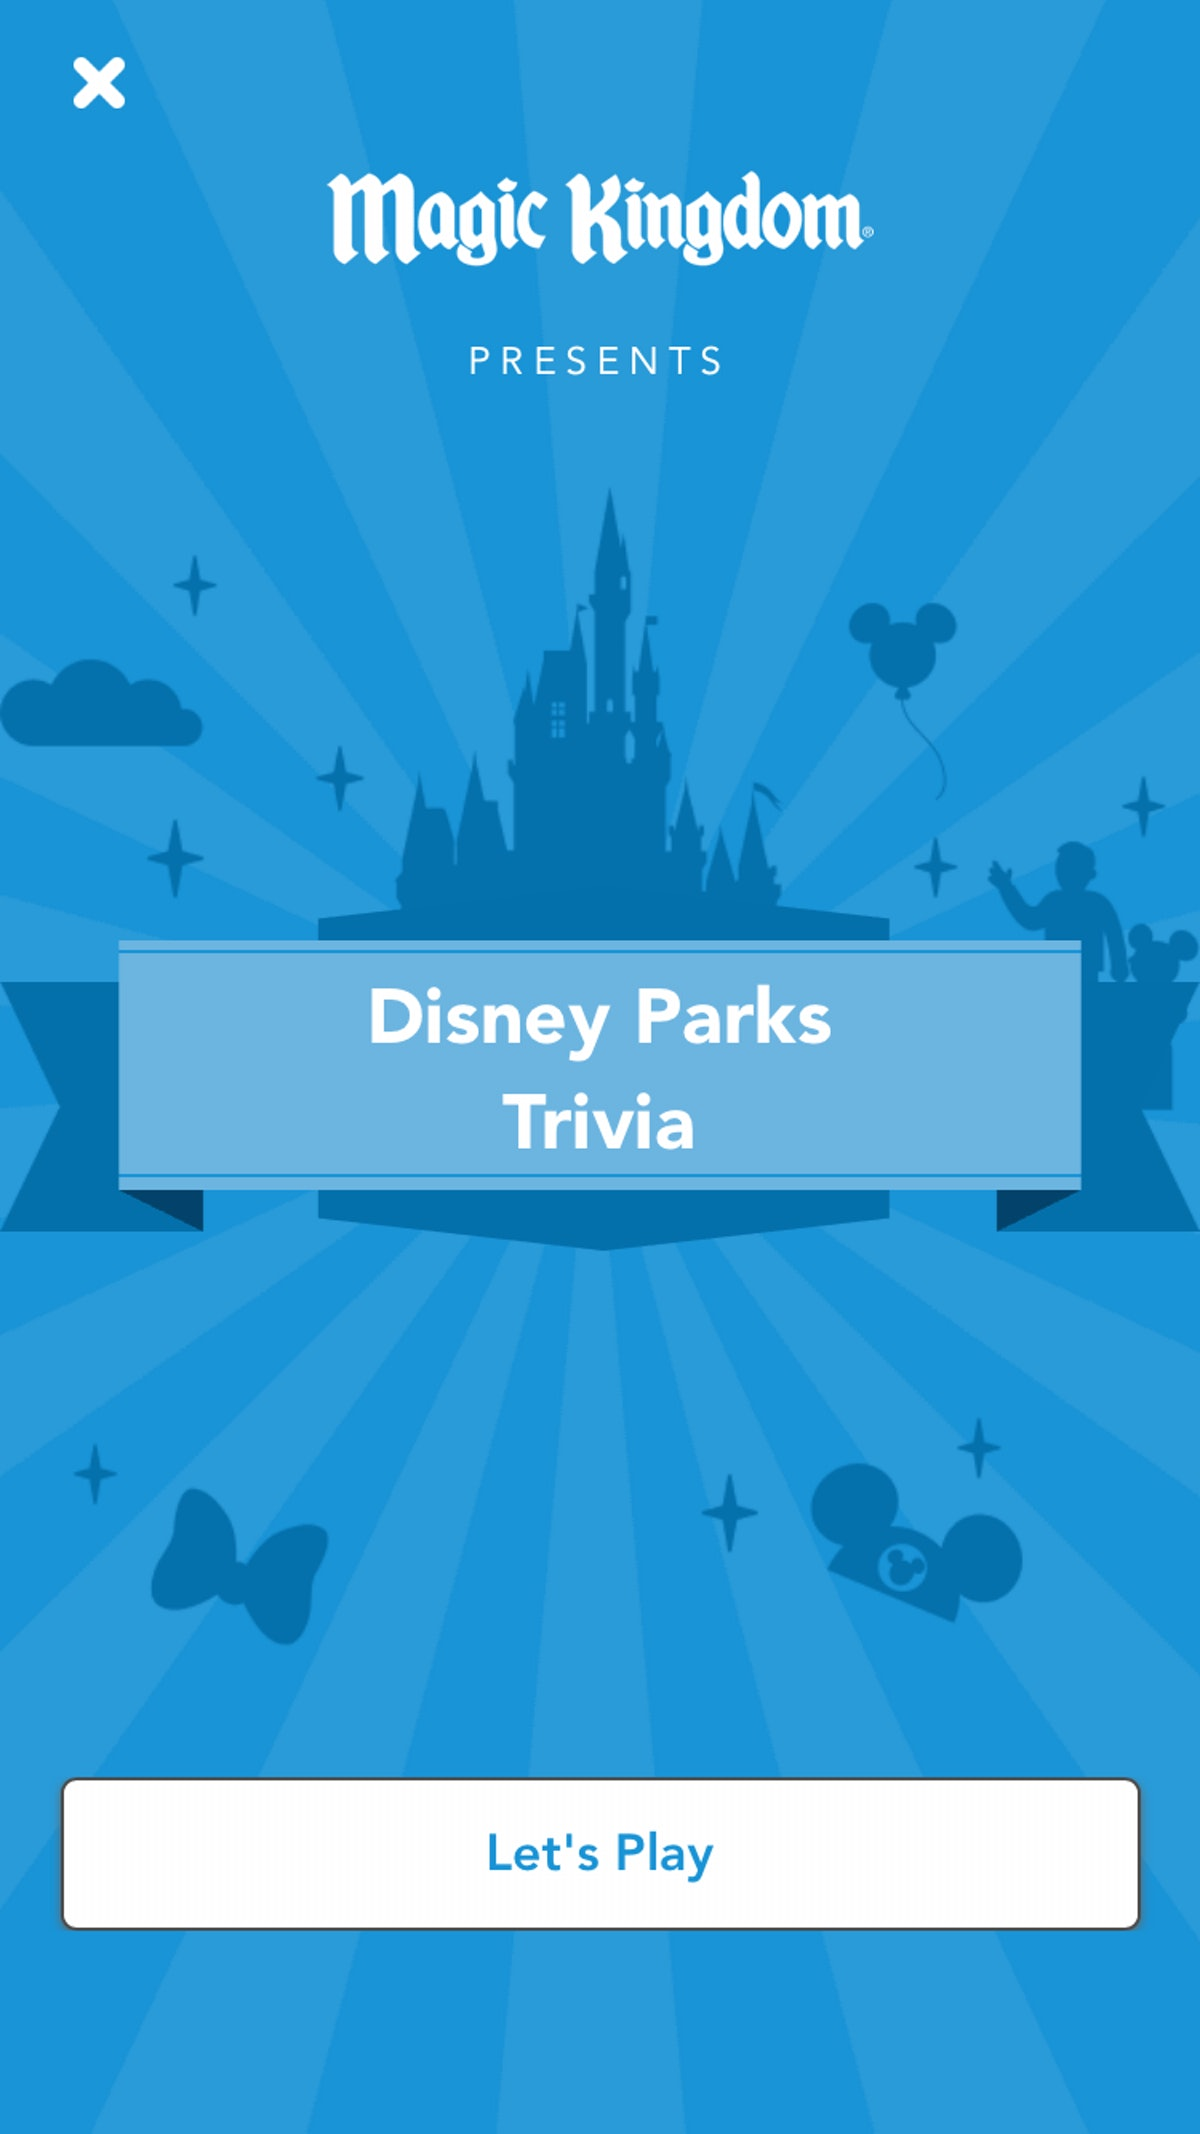 Cinderella's castle is at the center of a Disney parks trivia game.